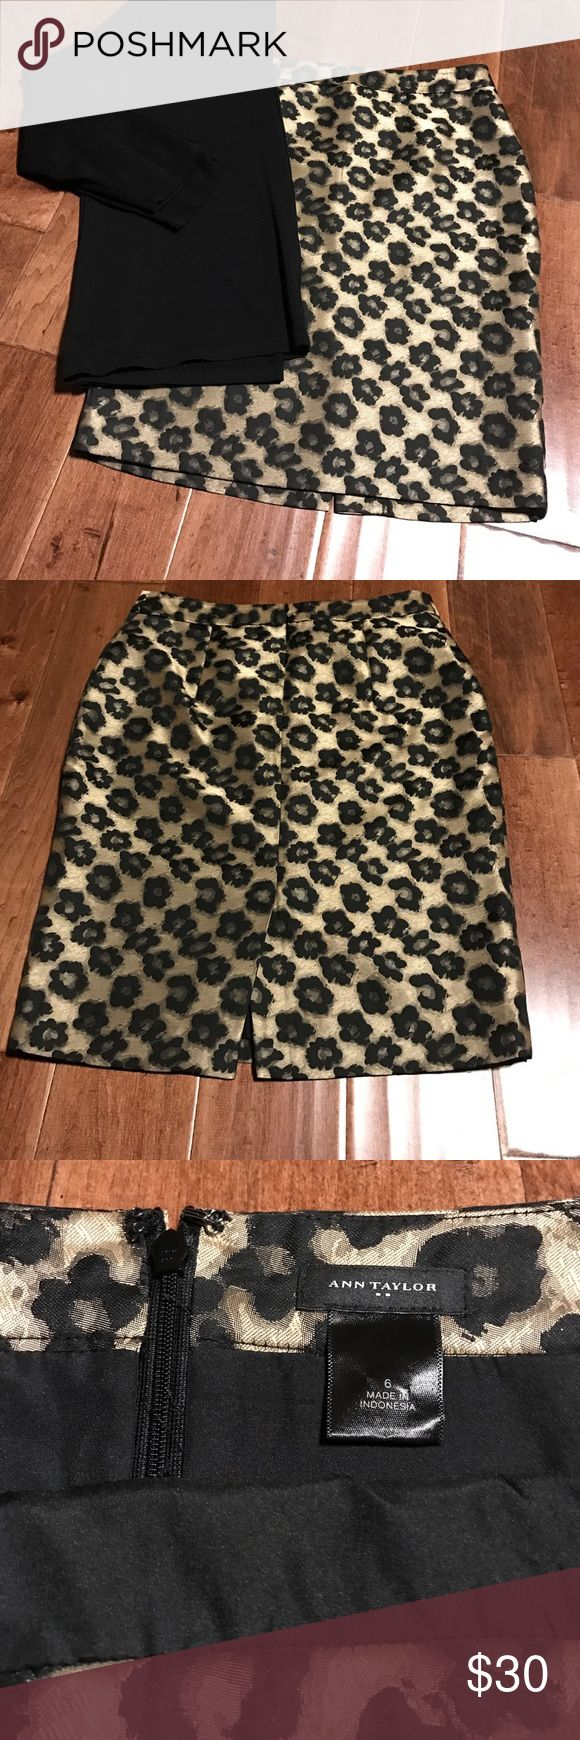 """HP💞Ann Taylor 🐆 Cheetah Skirt Ann Taylor, size 6. Perfect condition, appx knee length @ 22"""". Waist measures appx 15"""" laid flat. Material has a somewhat shiny sheen to it. Has zipper in back and a 6"""" slit. Looks great with the black semi-sheer Ann Klein top I have in another listing because the materials are very similar. Ann Taylor Skirts Midi"""